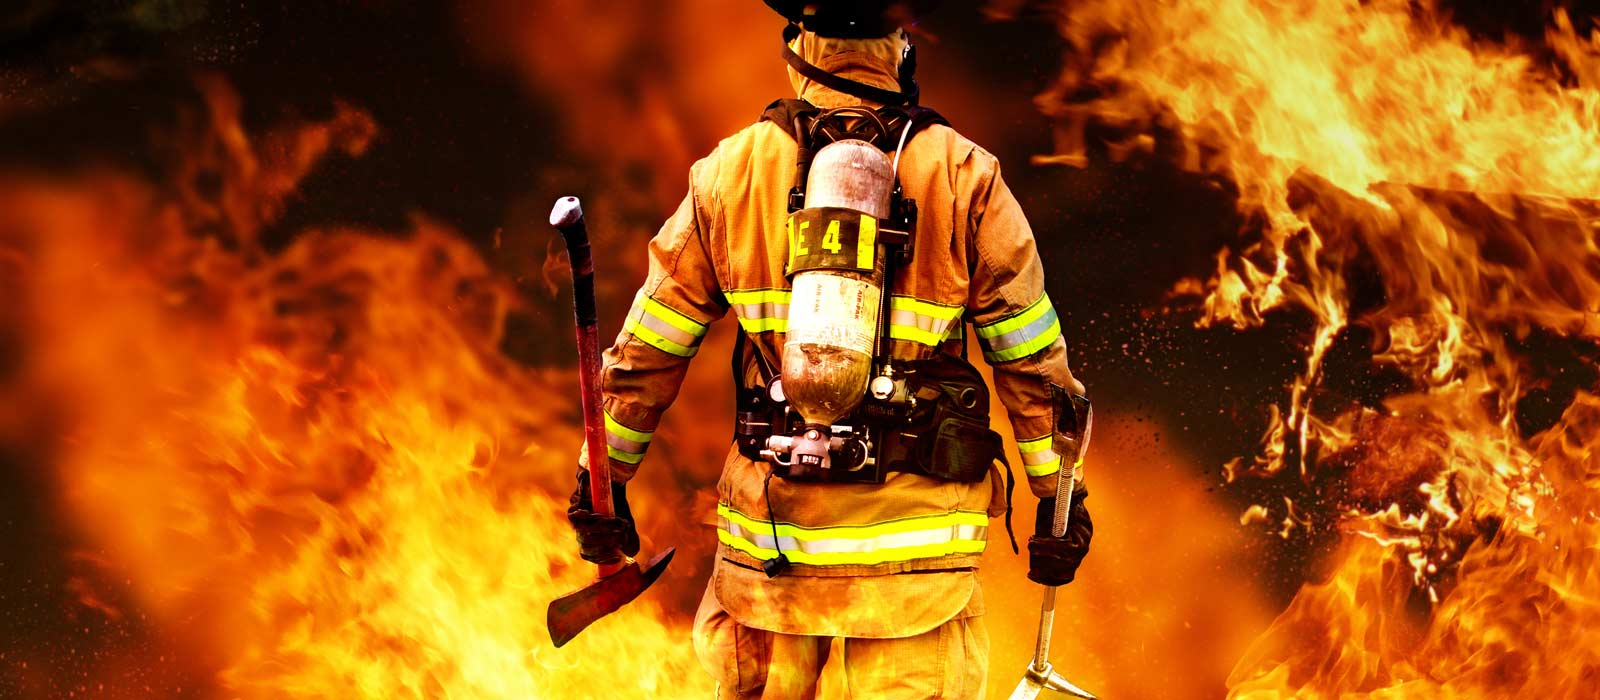 Fire Safety Courses: Career Prospects, Syllabus, Scope, and Salary